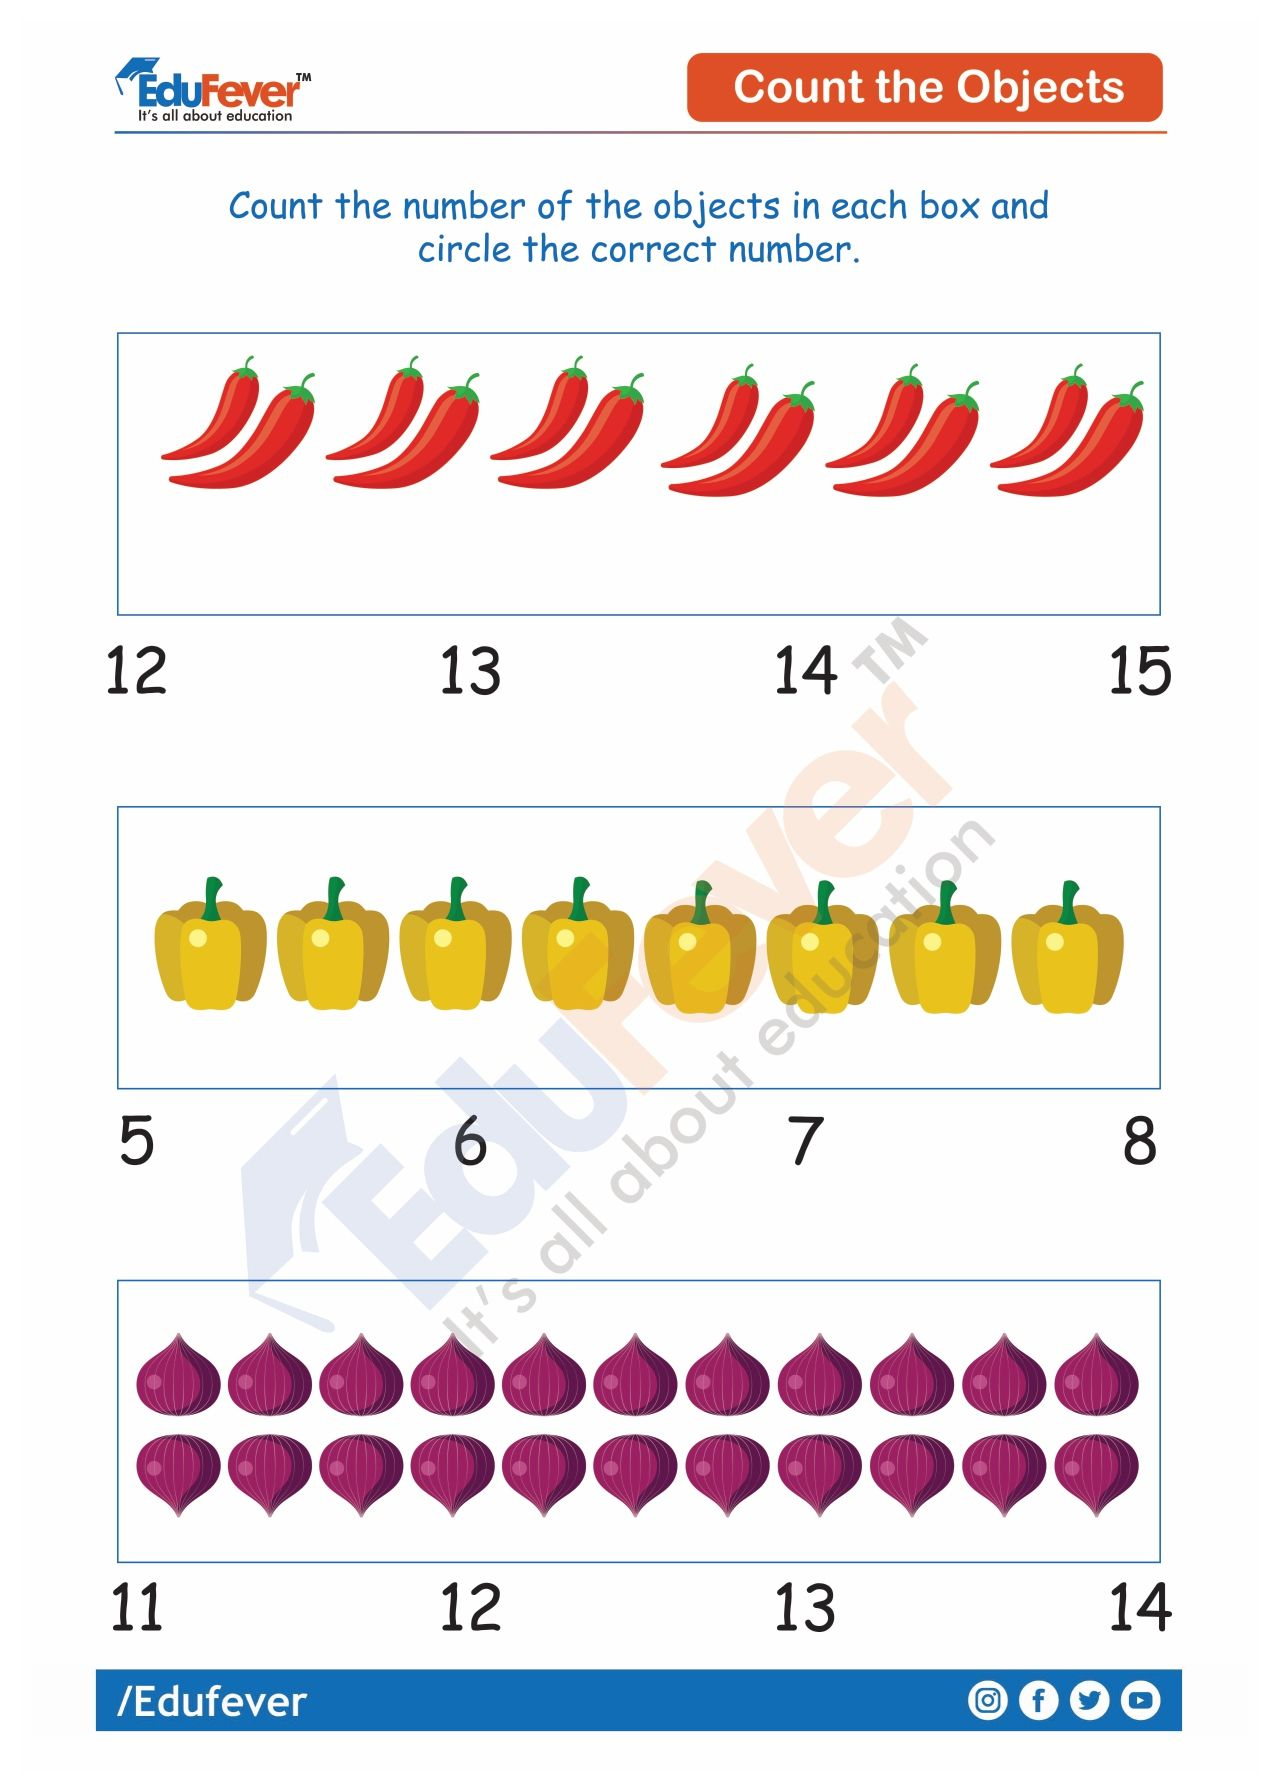 Count And Circle The Number Ukg Worksheets Counting For Kids Math Worksheet Preschool Learning [ 1792 x 1278 Pixel ]